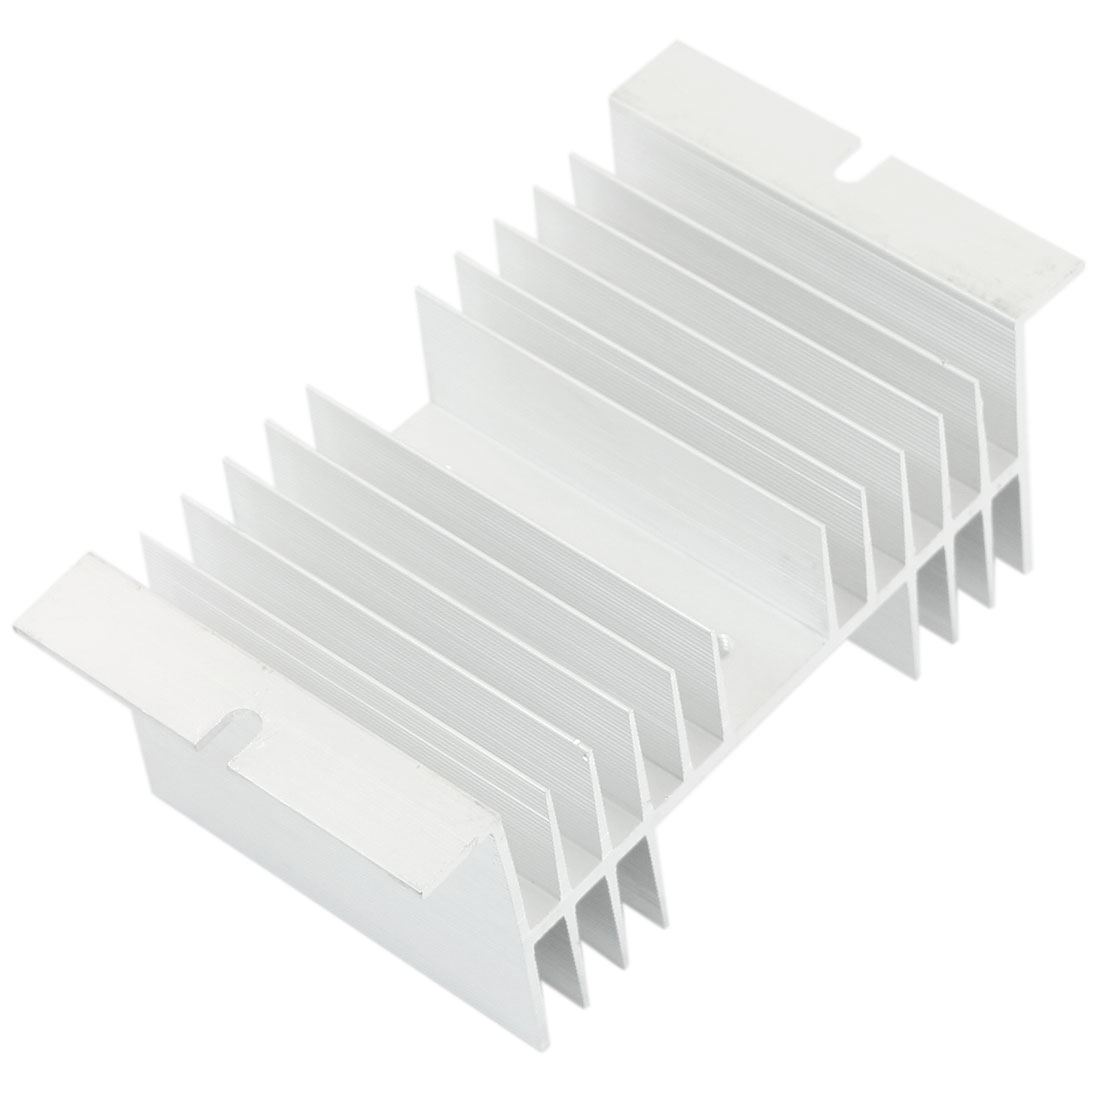 Aluminum Single Phase Solid State Relay Heat Diffuse Heatsink Cooling Fin 130mmx70mmx50mm